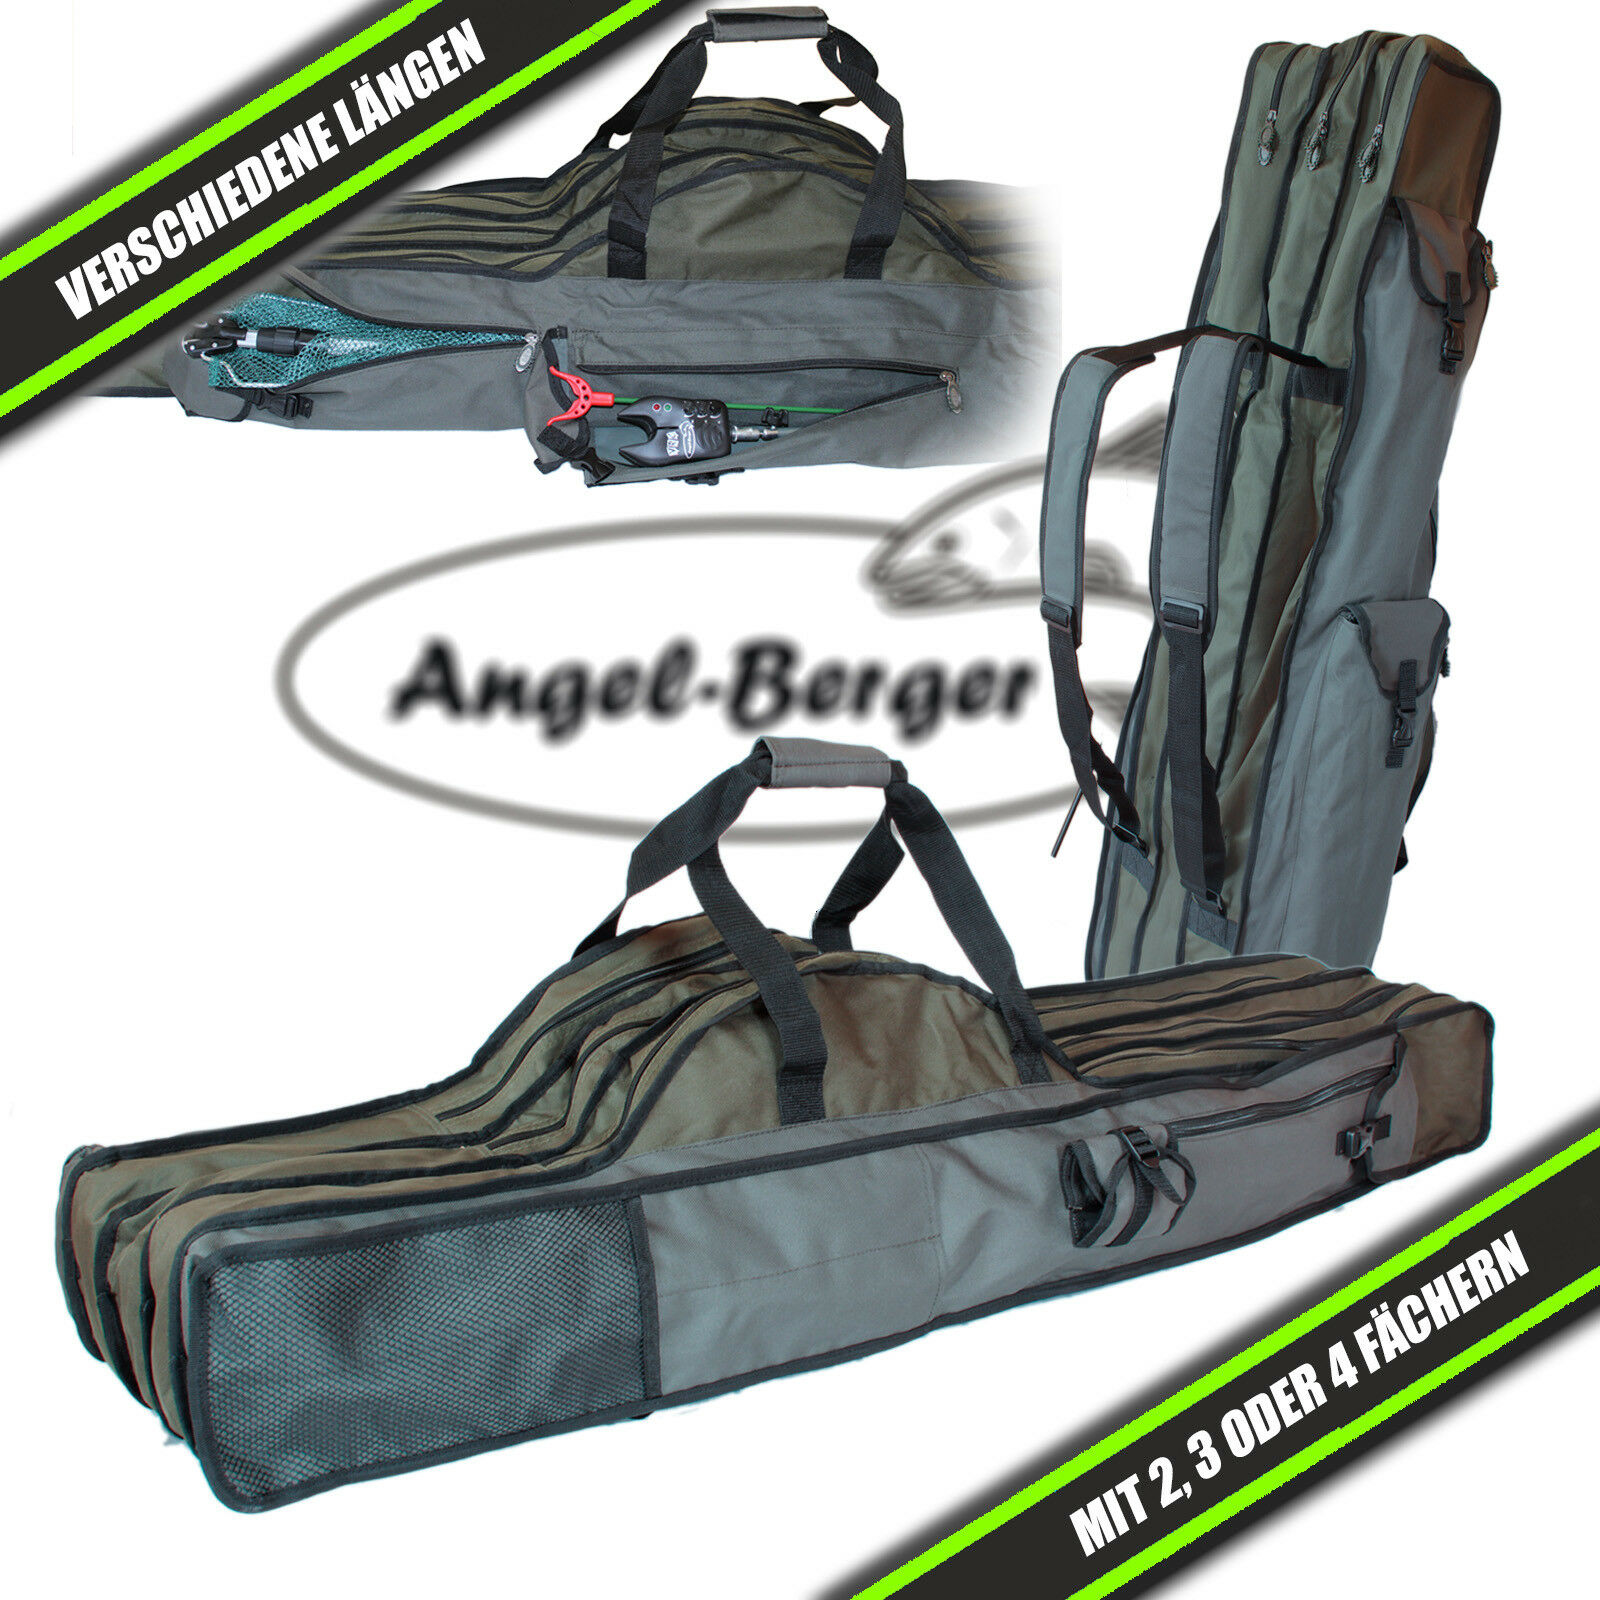 Luxus Rutentasche Rutenfutteral Angeltasche Rod Bag Bag Bag 15e579